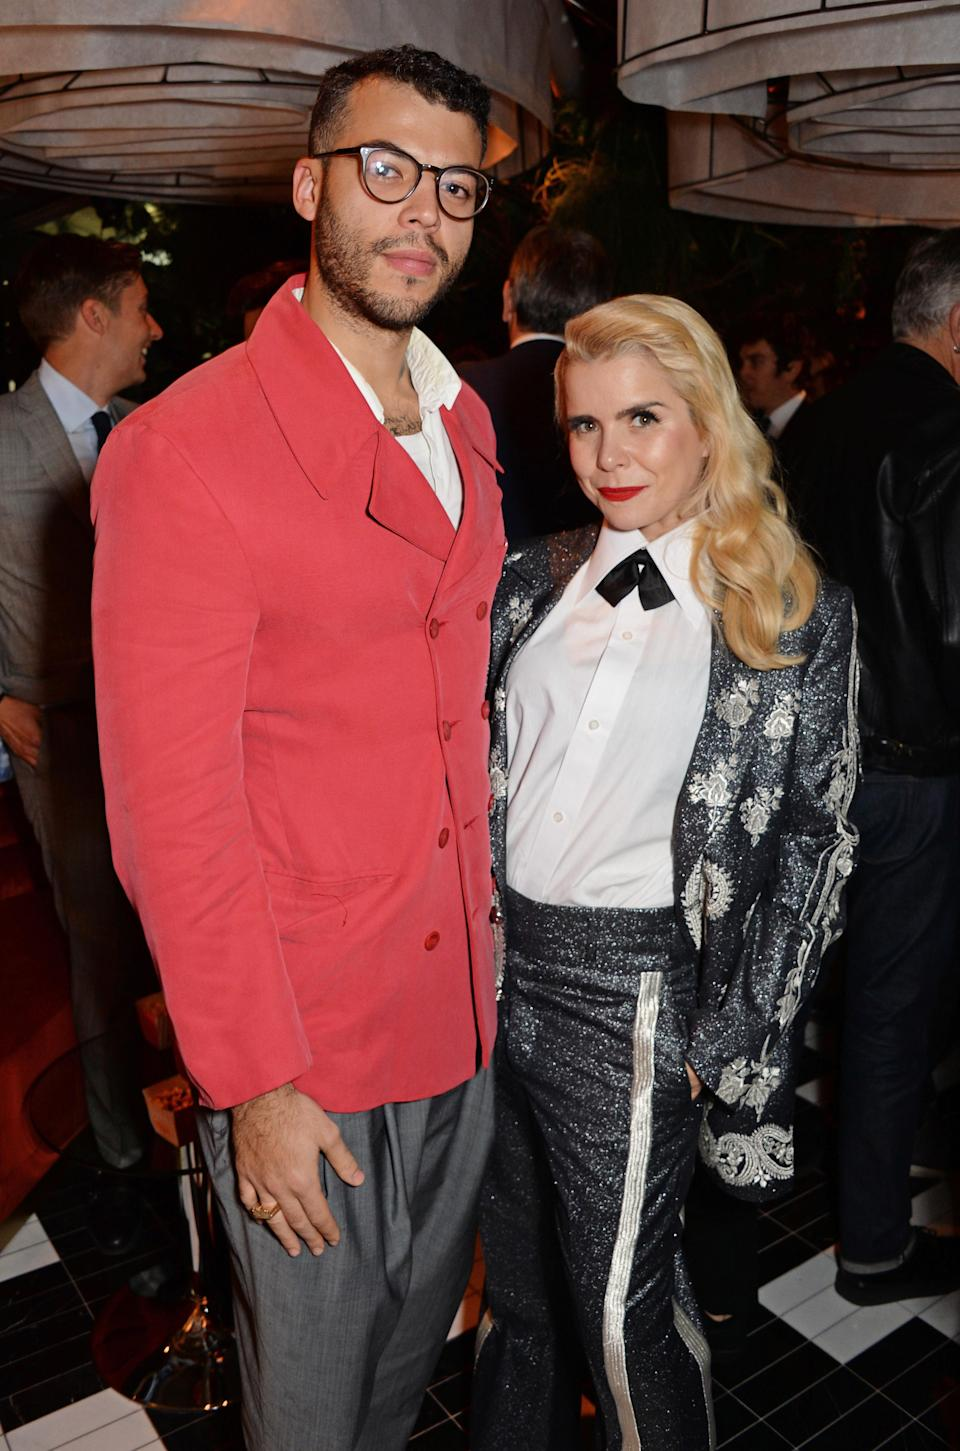 Paloma Faith and her partner Leyman Lahcine (pictured at the GQ 30th anniversary party in London in October 2018). [Photo: Getty]